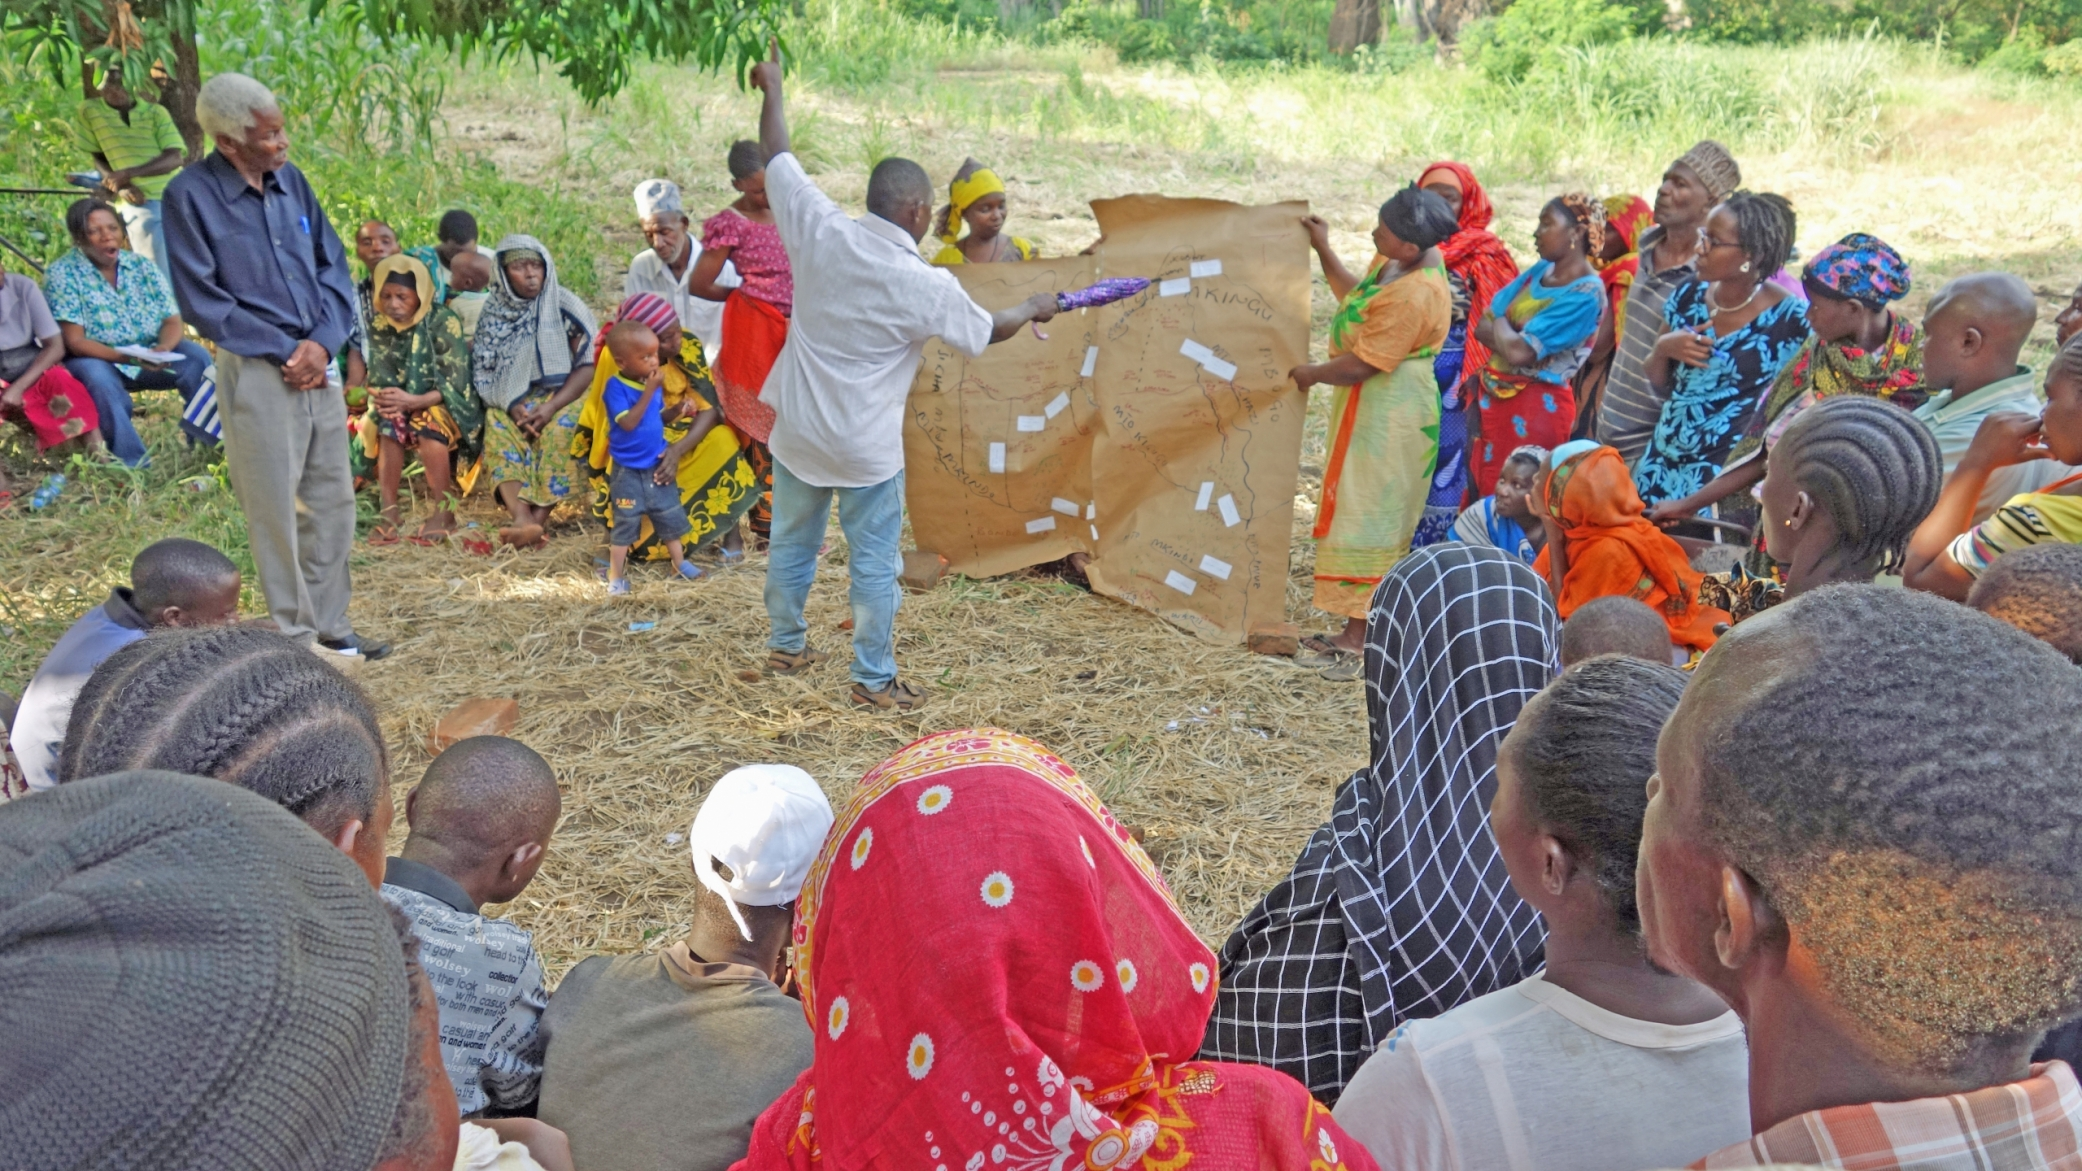 community climate vulnerability assessment meeting in Tanzania